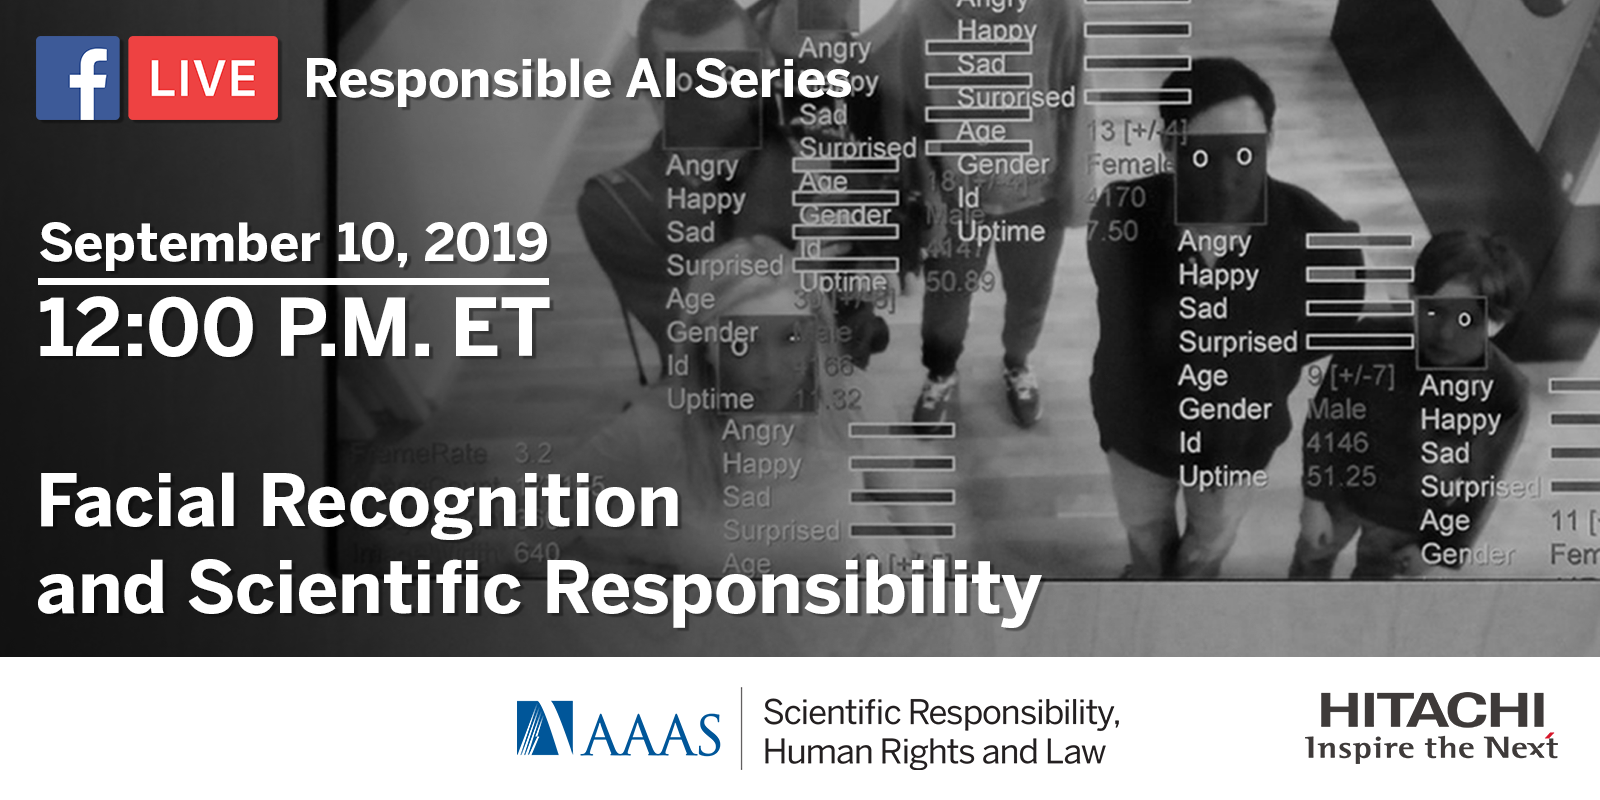 September 10, 2019 at 12PM Eastern: Facebook Live on Facial Recognition and Scientific Responsibility